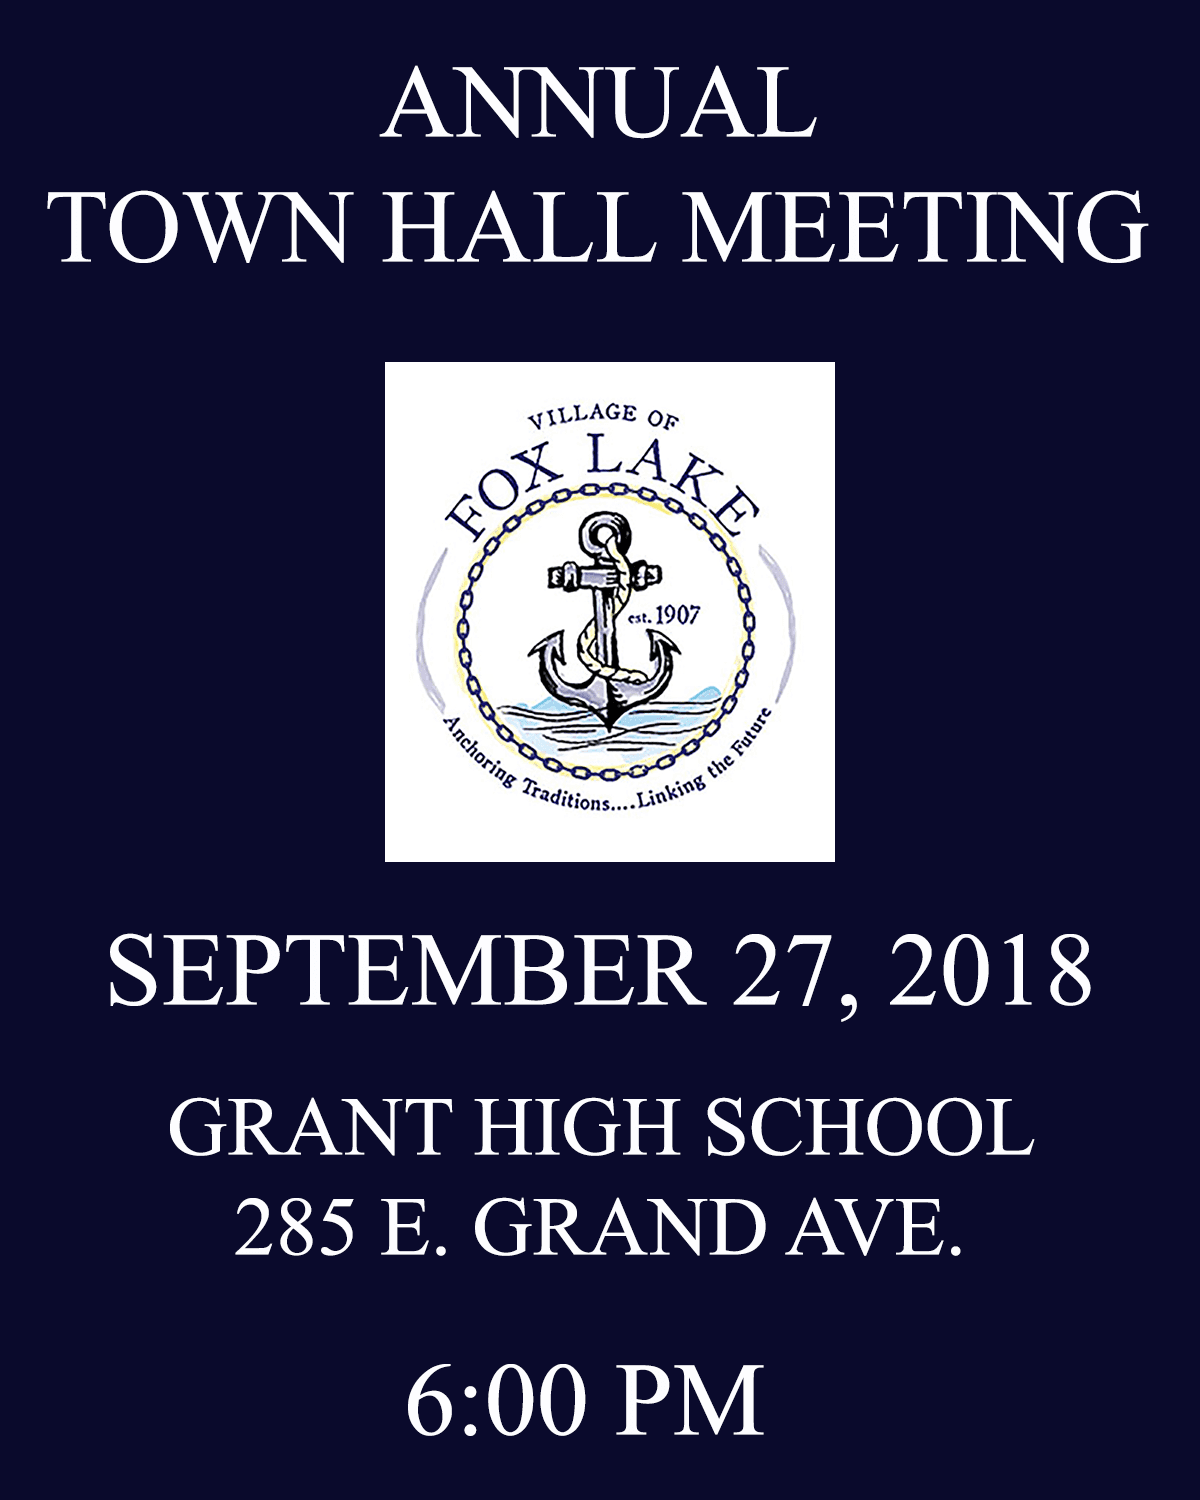 TOWNHALL MEETING 2018